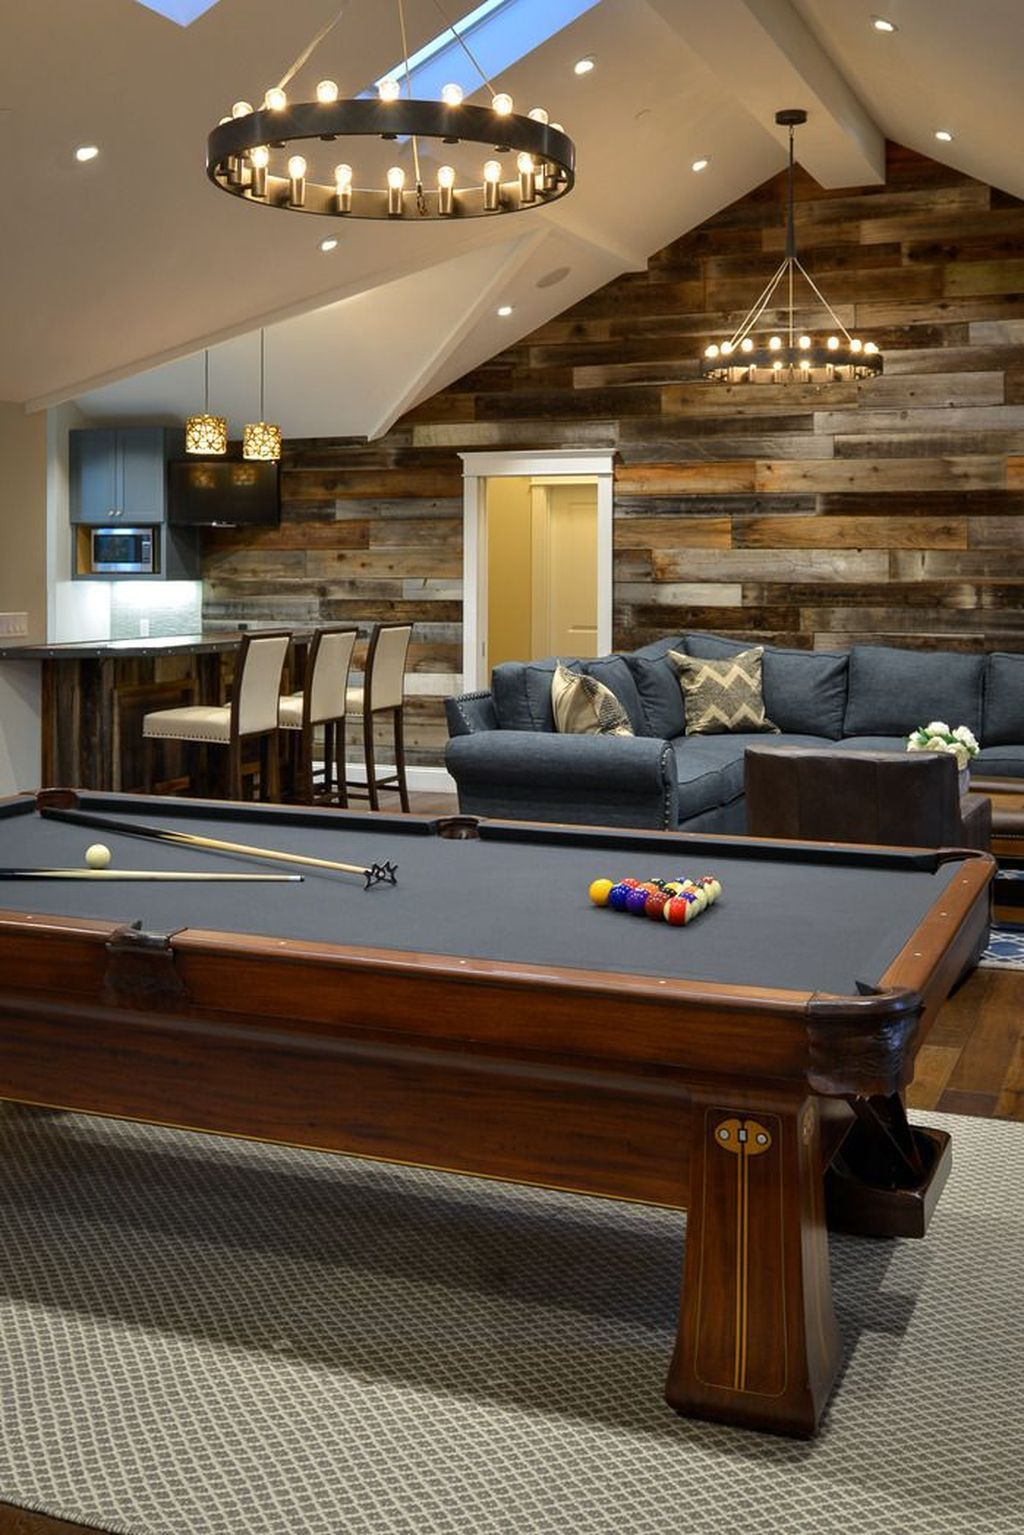 Cozy Game Room Ideas For Your Home 22 Game Room Basement Pool Table Room Man Cave Home Bar